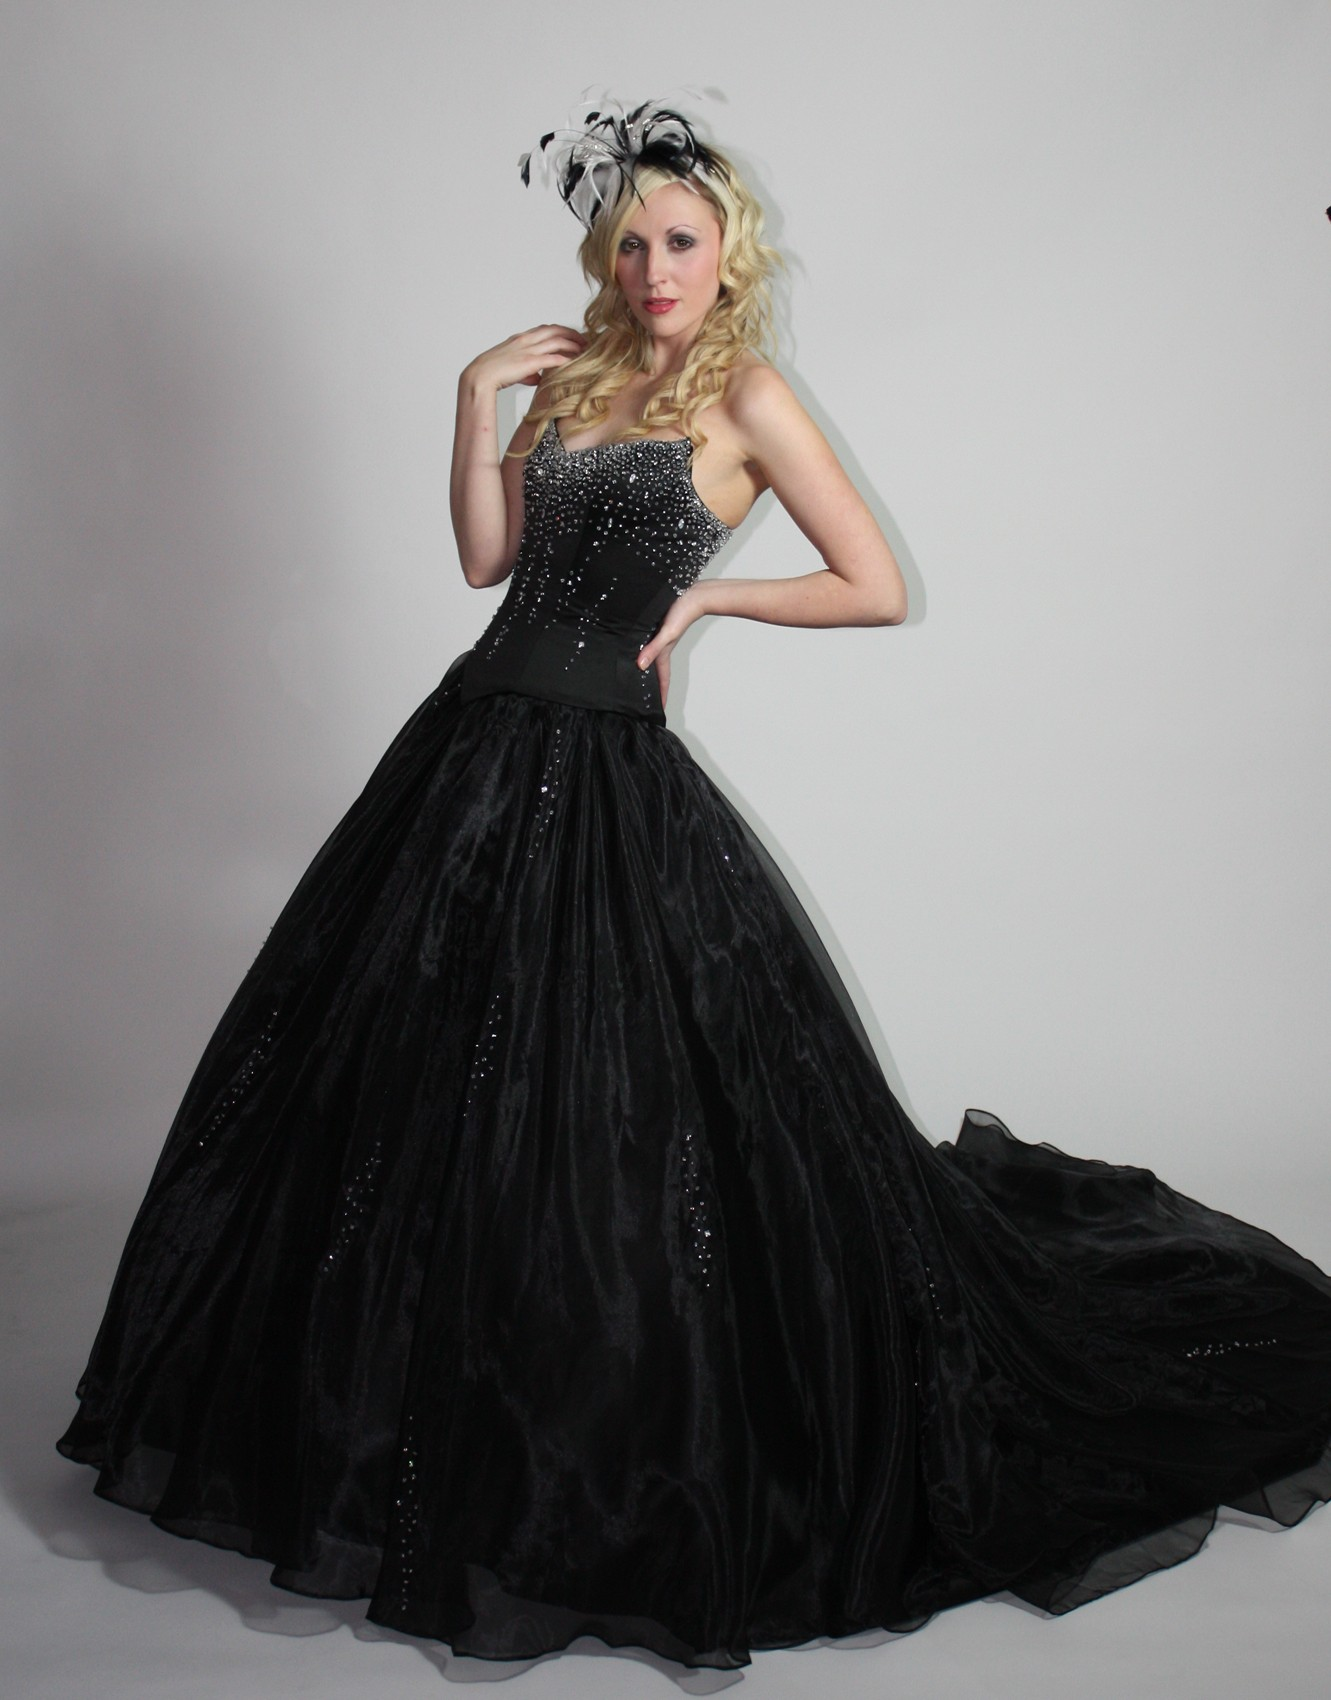 black wedding dresses ideas inspiration for sexy sophisticated look black wedding dresses black ball gown wedding dress with gothic style